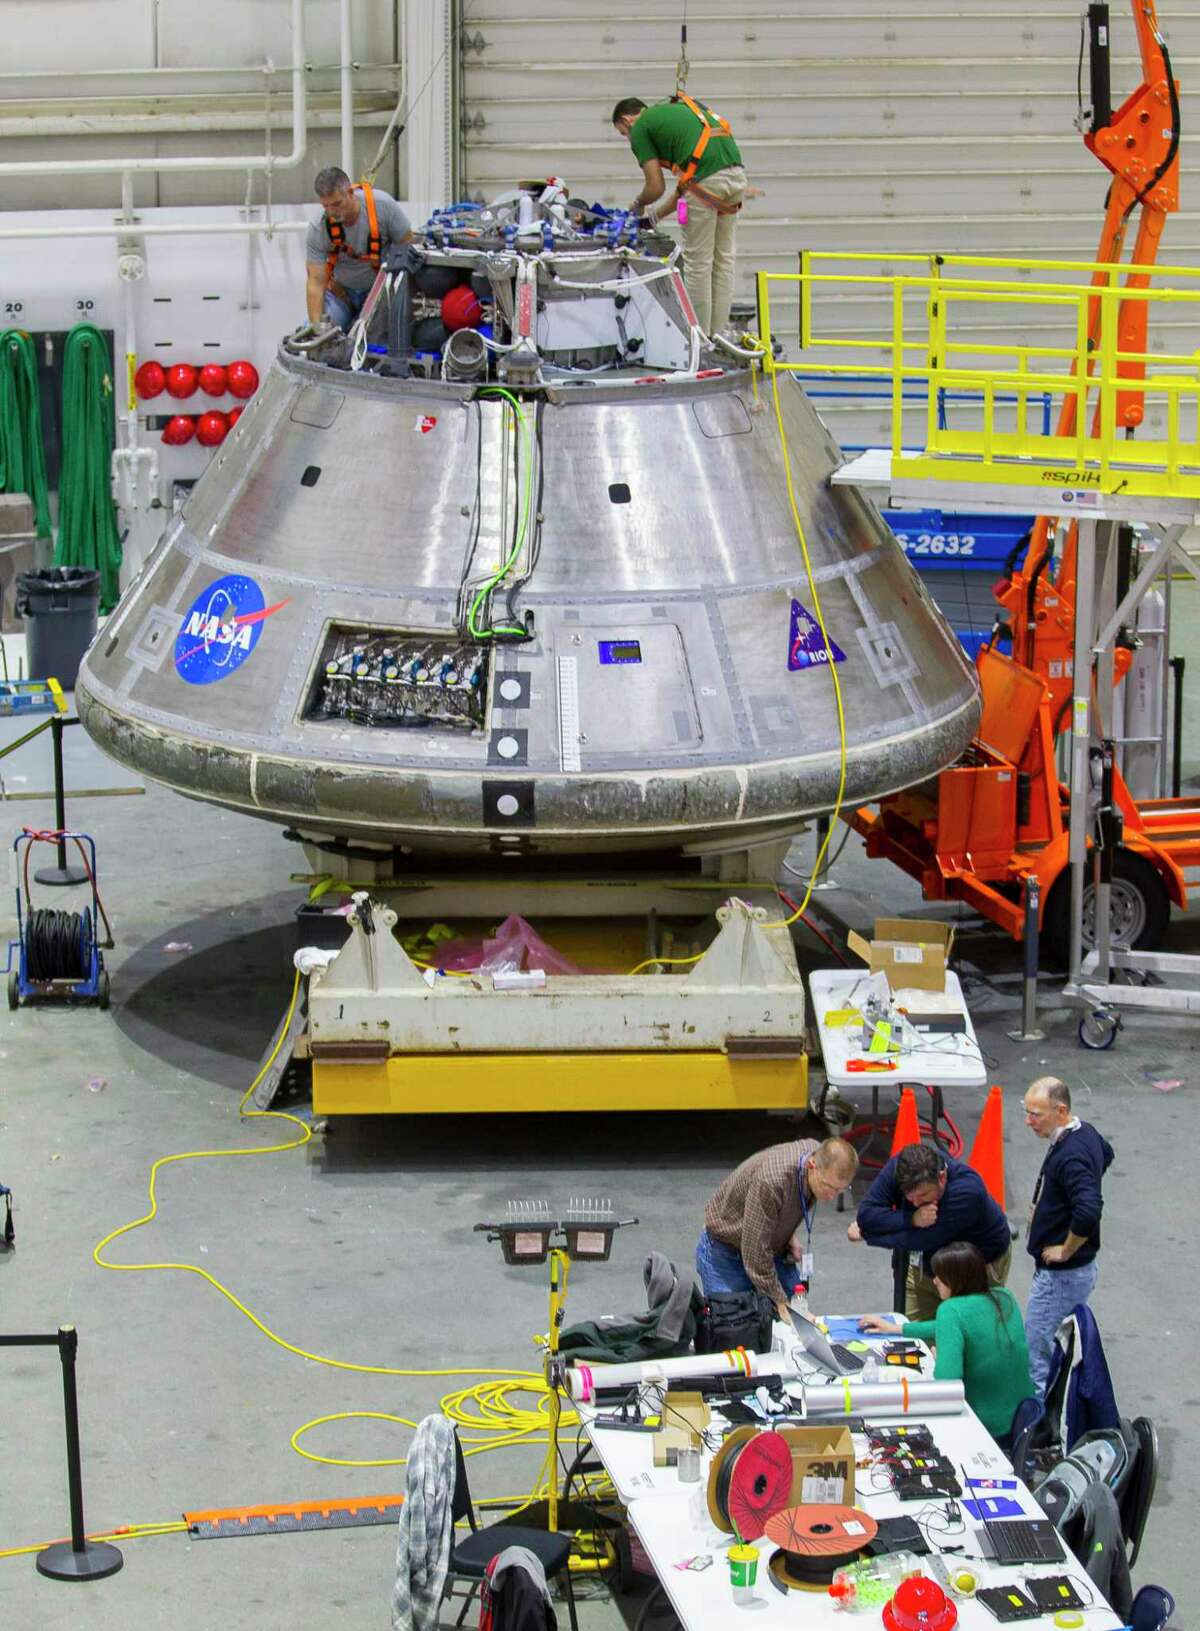 Workers make adjustments to an Orion capsule being used for training at the Neutral Buoyancy Laboratory, Monday, Feb. 12, 2018, in Houston.